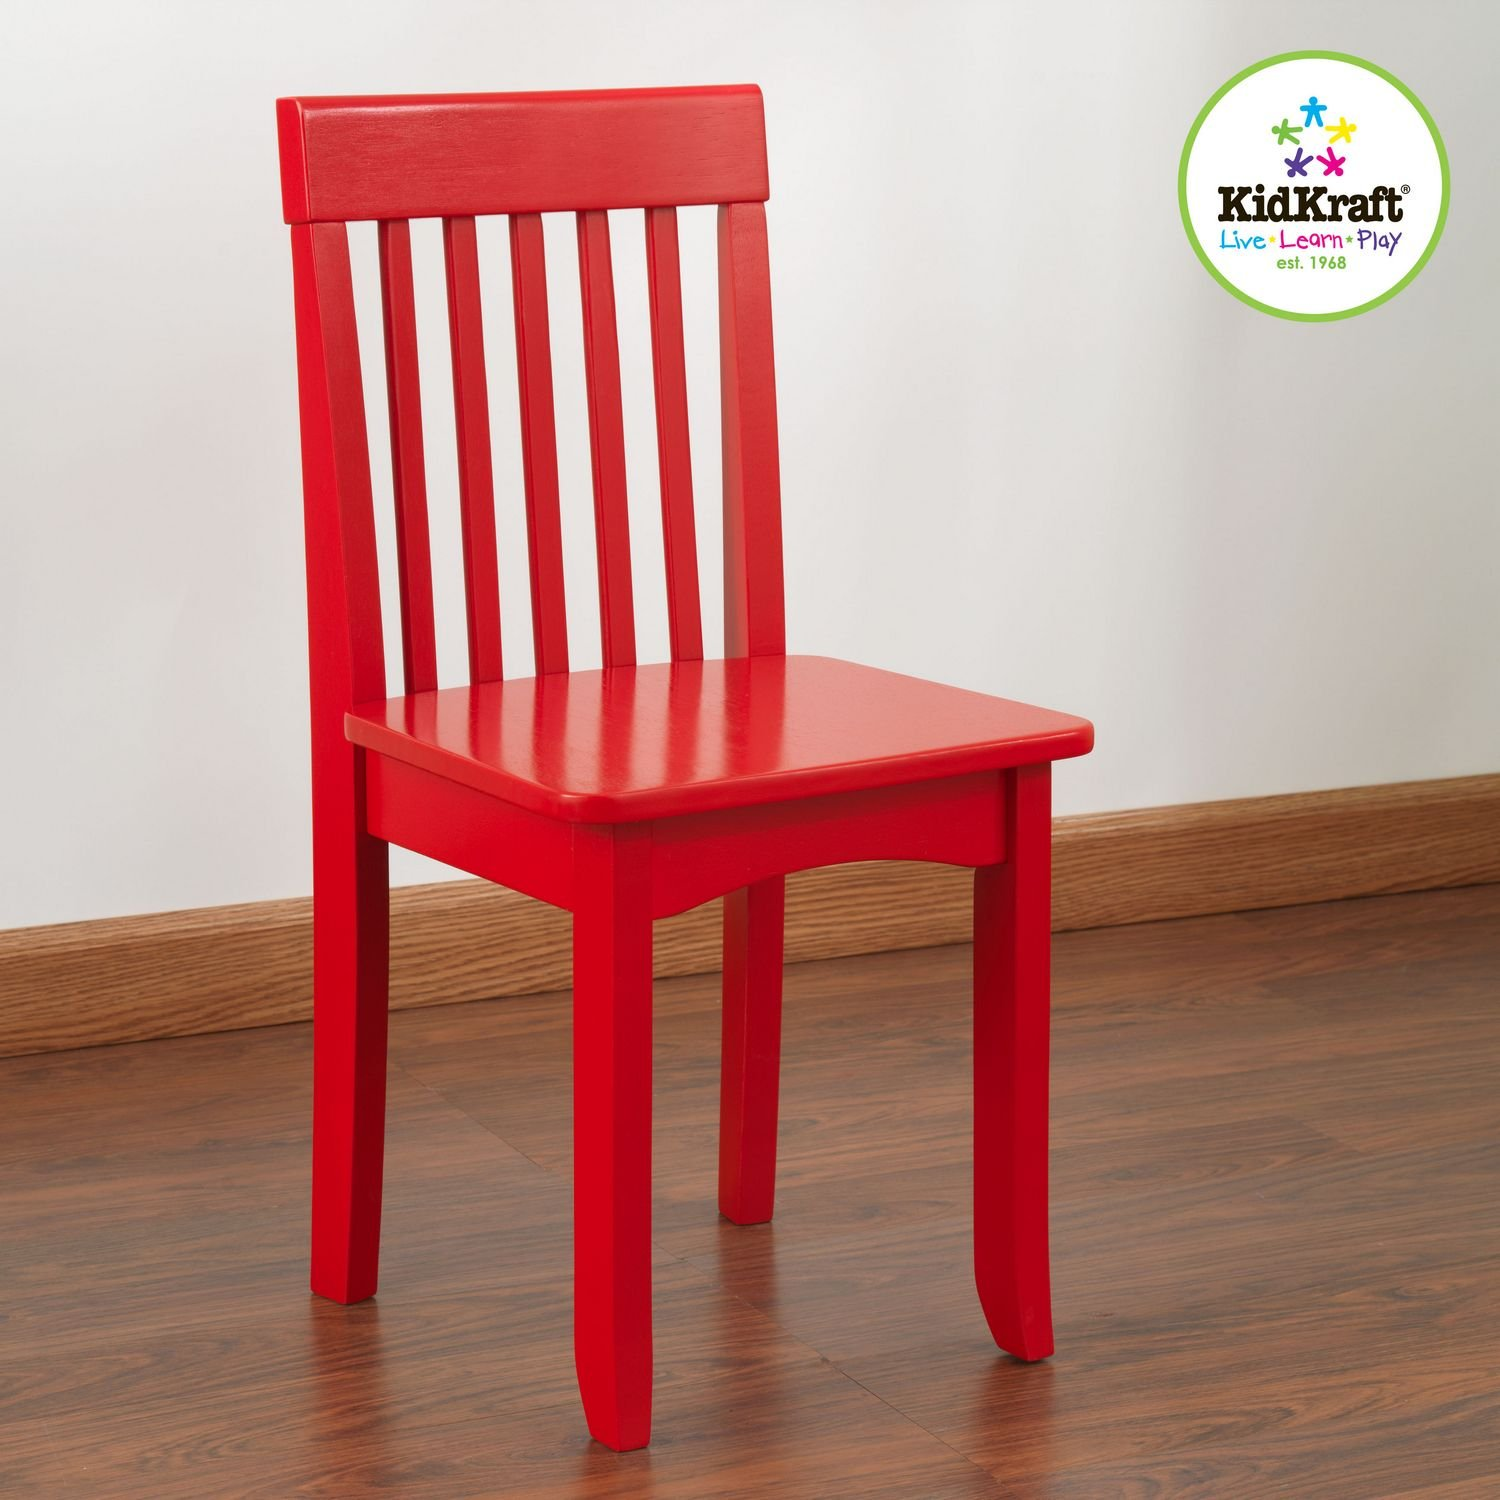 Kidkraft Avalon Chair For Children- Rasberry 16616